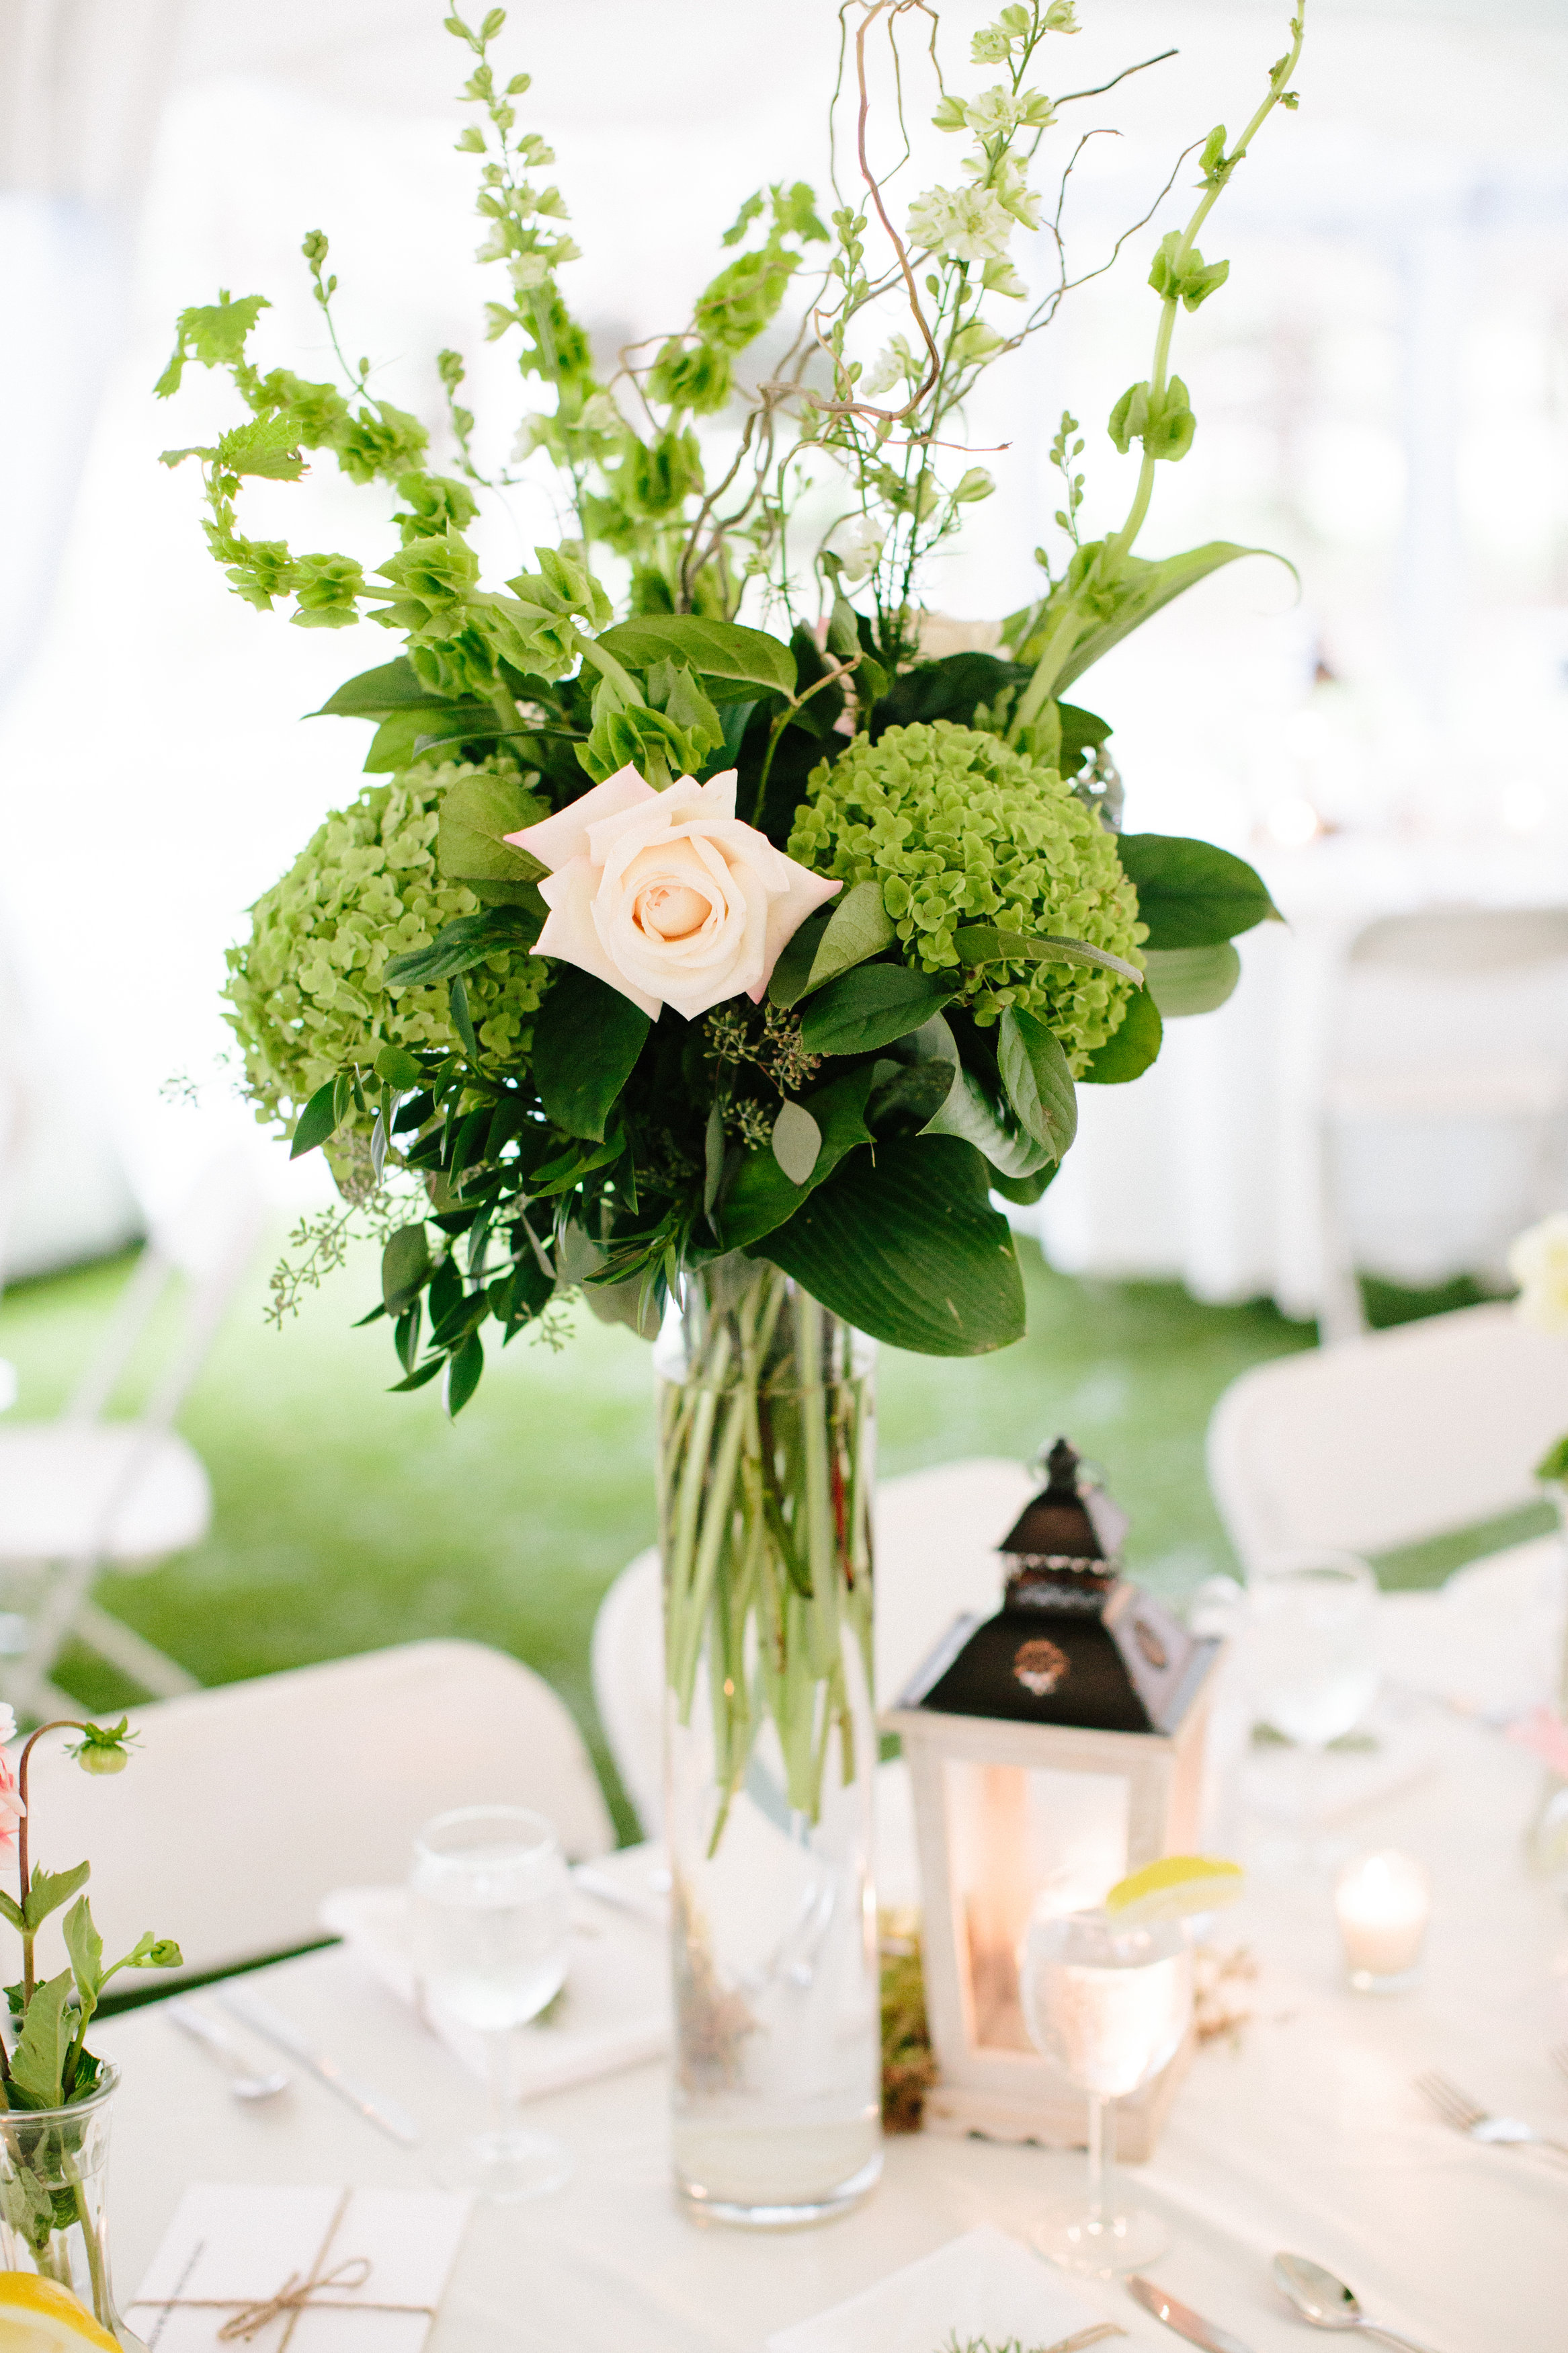 One of my favorite centerpieces....different varieties of foliage (most harvested from people's landscaping) with small splashes of color mixed in.